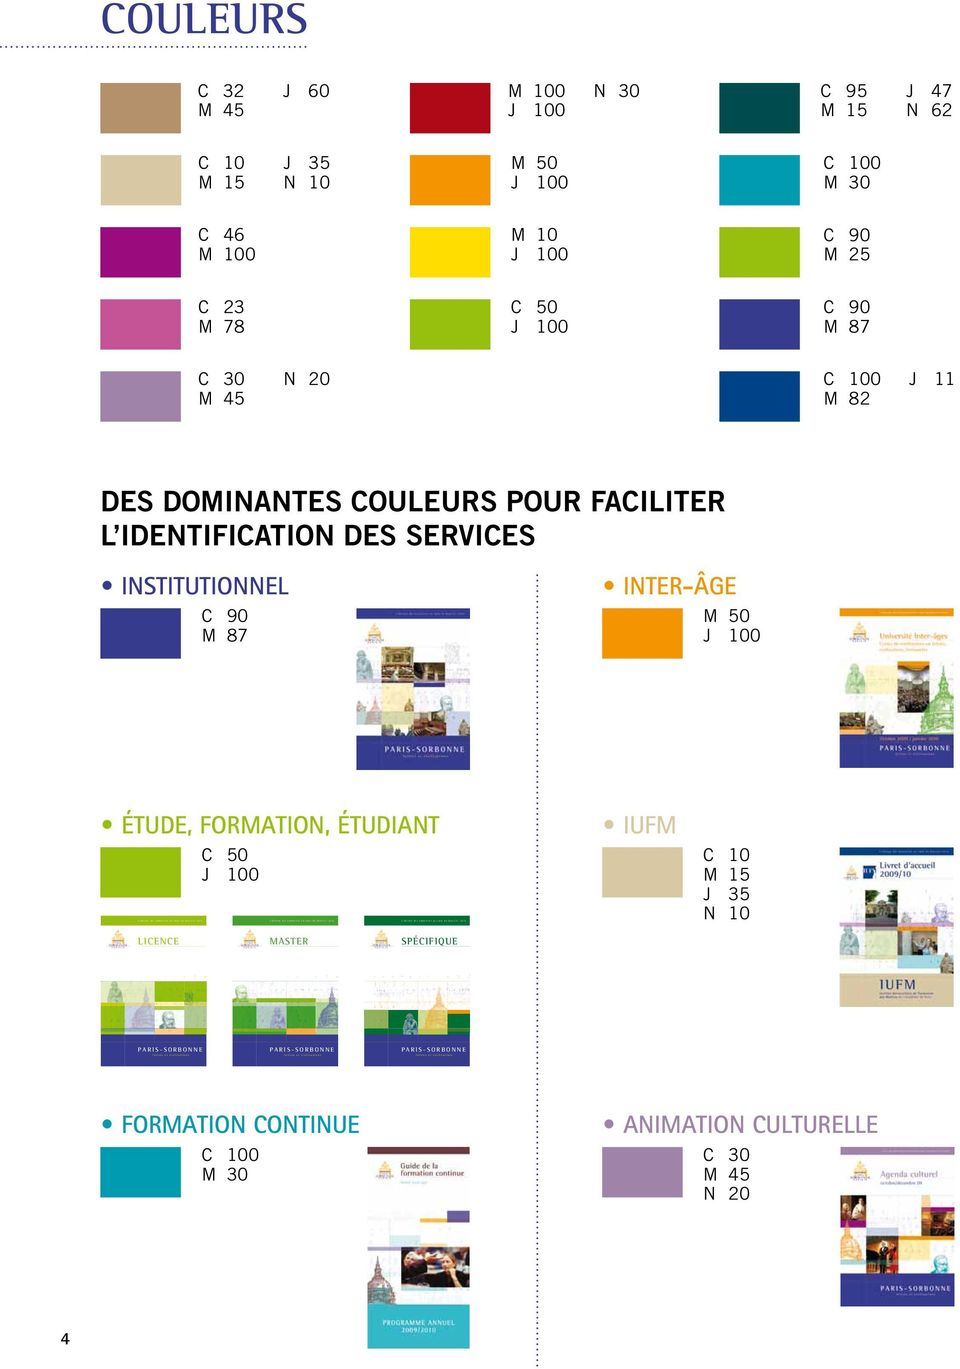 M 100 M 10 C 90 M 25 C 23 M 78 C 50 C 90 M 87 C 30 M 45 N 20 C 100 M 82 J 11 des dominantes couleurs pour faciliter l identification des services Institutionnel C 90 M